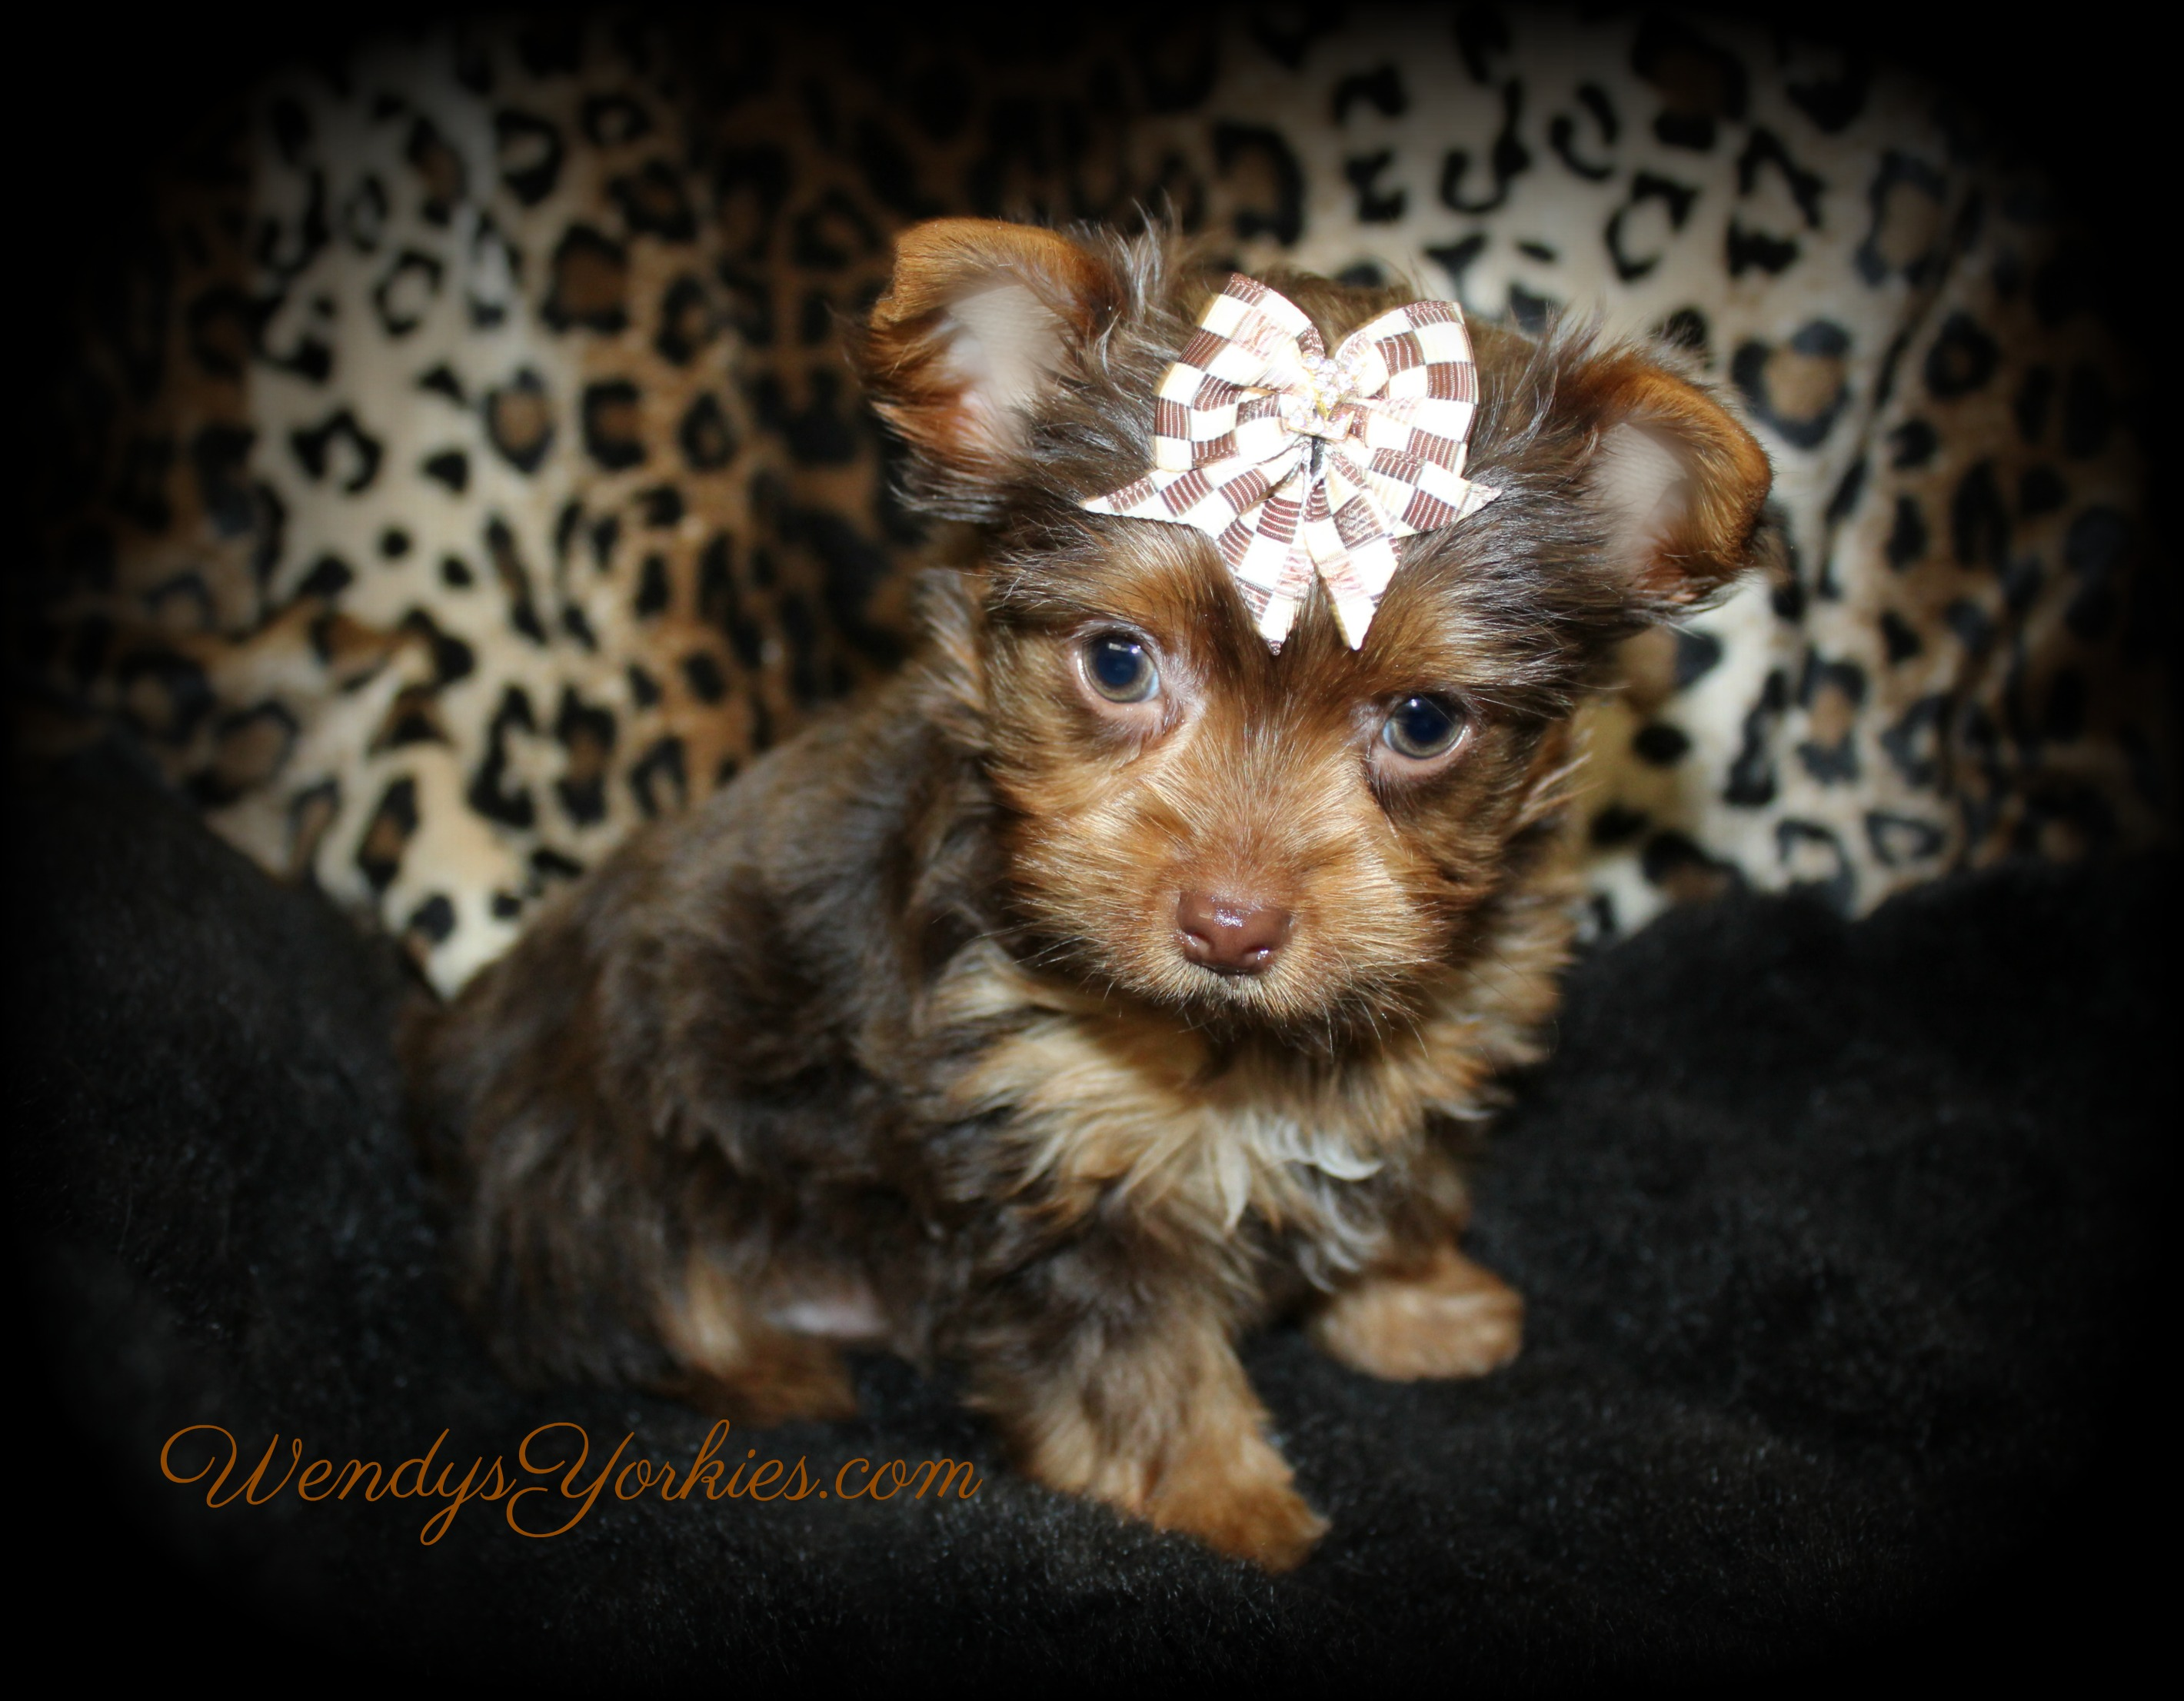 Teacup Chocolate Yorkie puppy for sale in Texas, Dixie Cm1, WendysYorkies.com